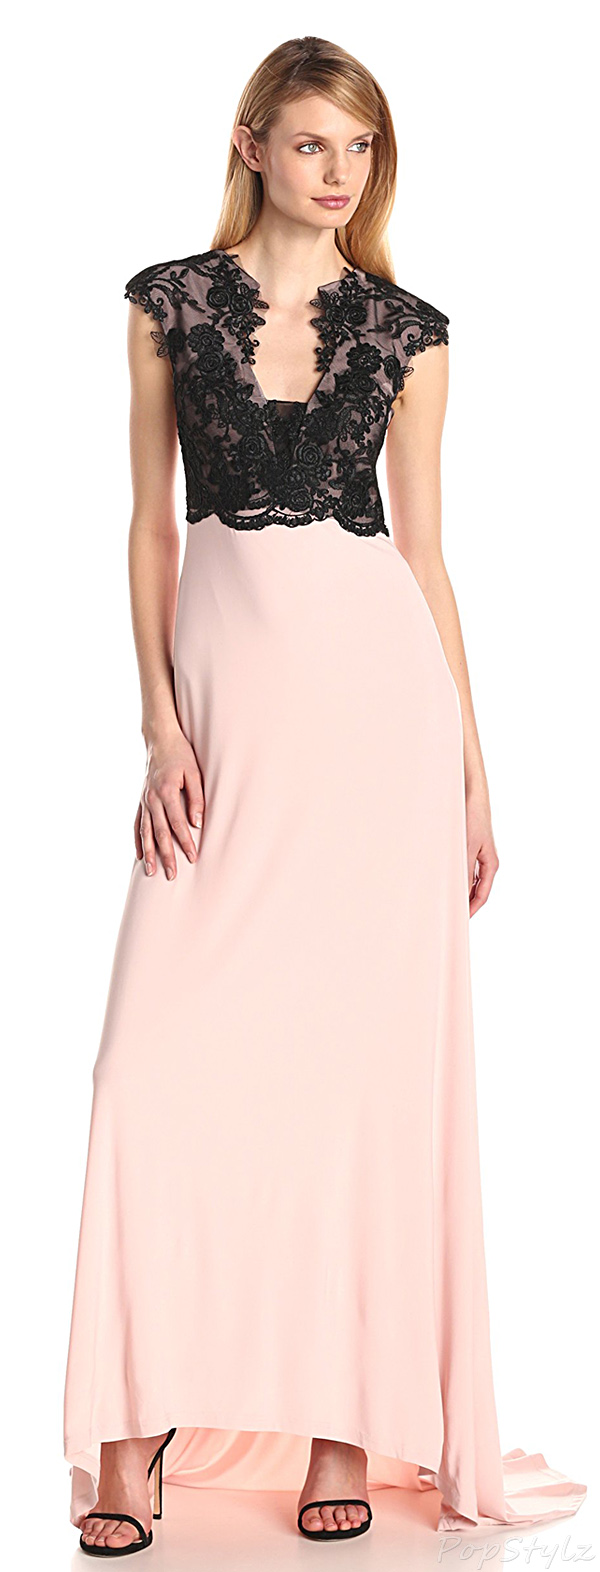 Adrianna Papell Cap-Sleeve Illusion Back Lace Top Gown